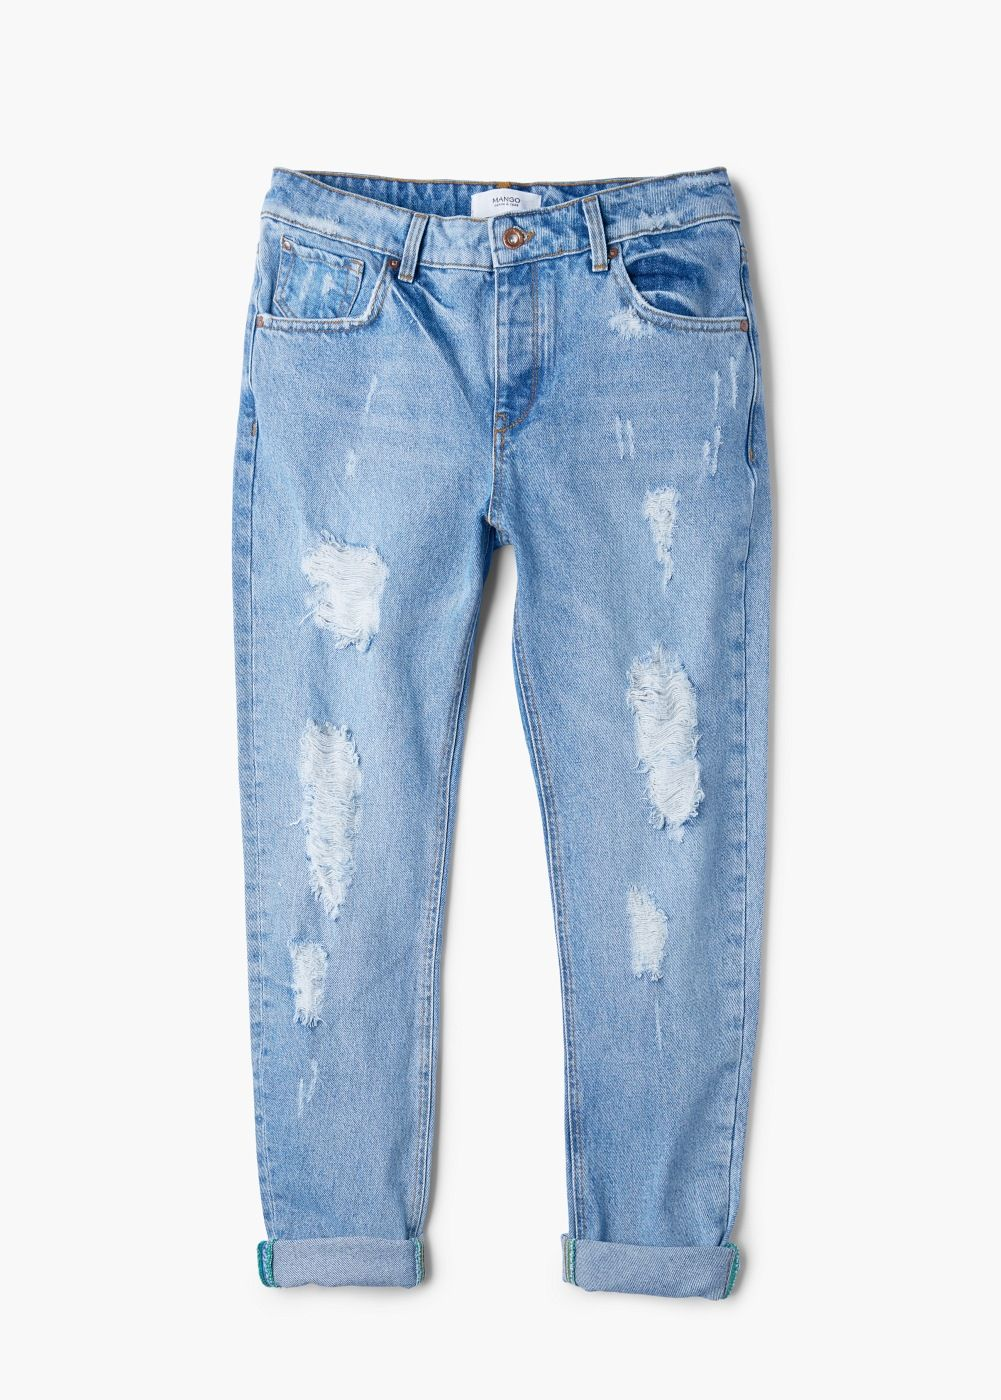 5616236fd85885 Boyfriend angie jeans - Women | My style - haves, want and wish list ...